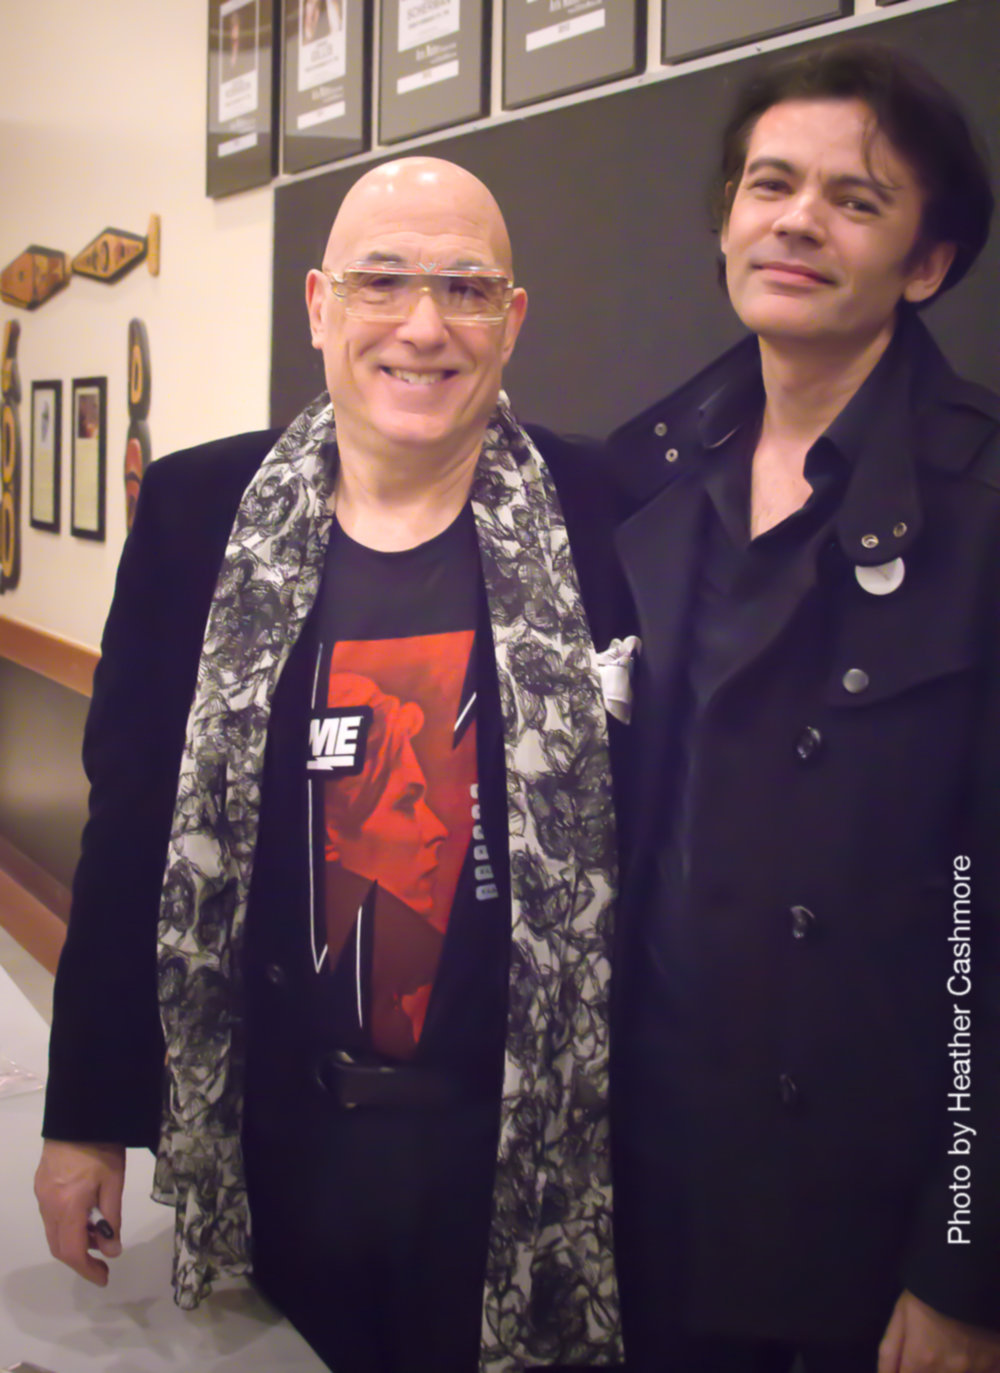 With Mike Garson